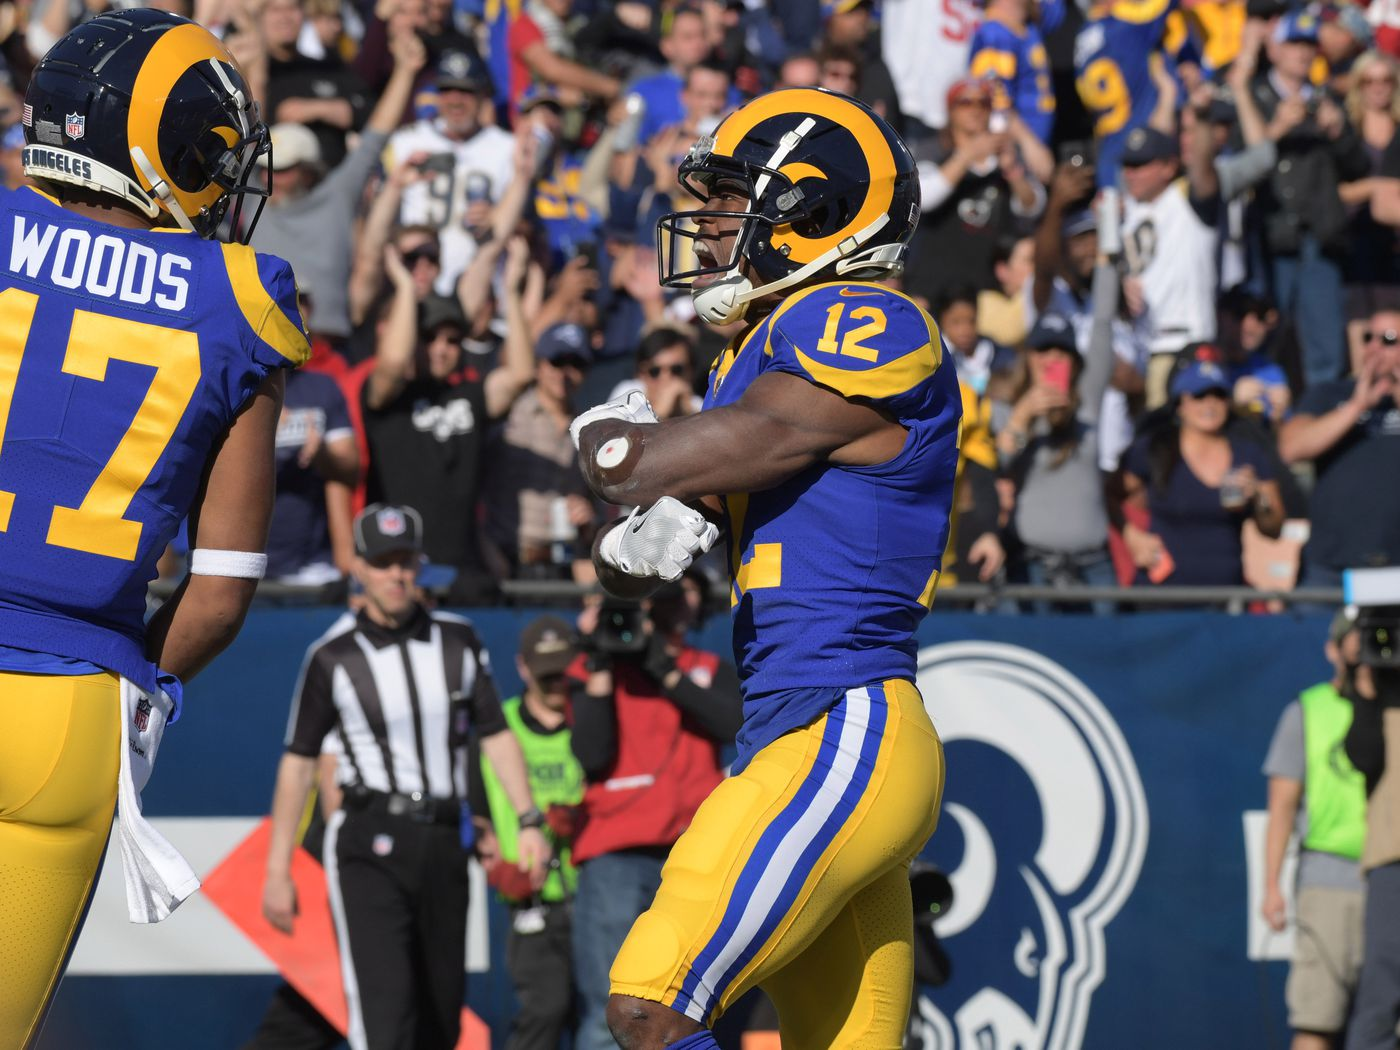 uk availability bf9d4 eb824 2019 Rams roster preview: WR Brandin Cooks 'em. - Turf Show ...